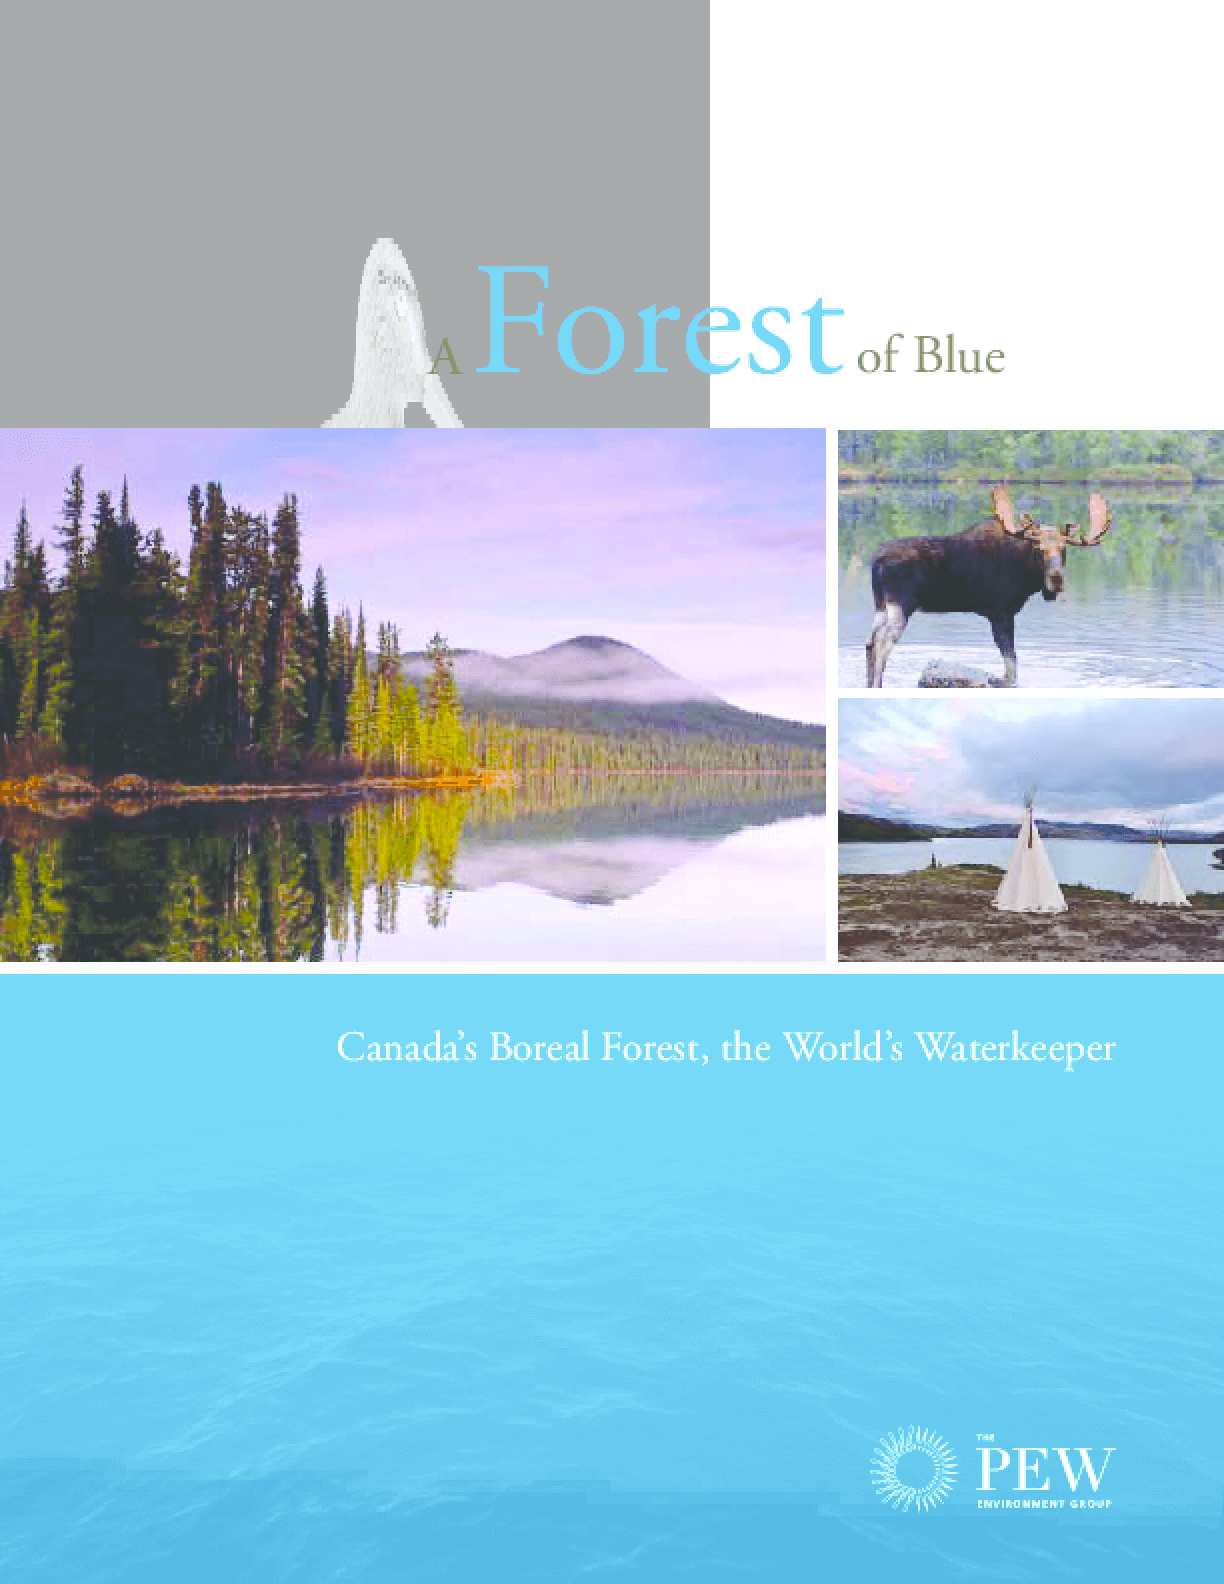 A Forest of Blue - Canada's Boreal Forest, the World's Waterkeeper